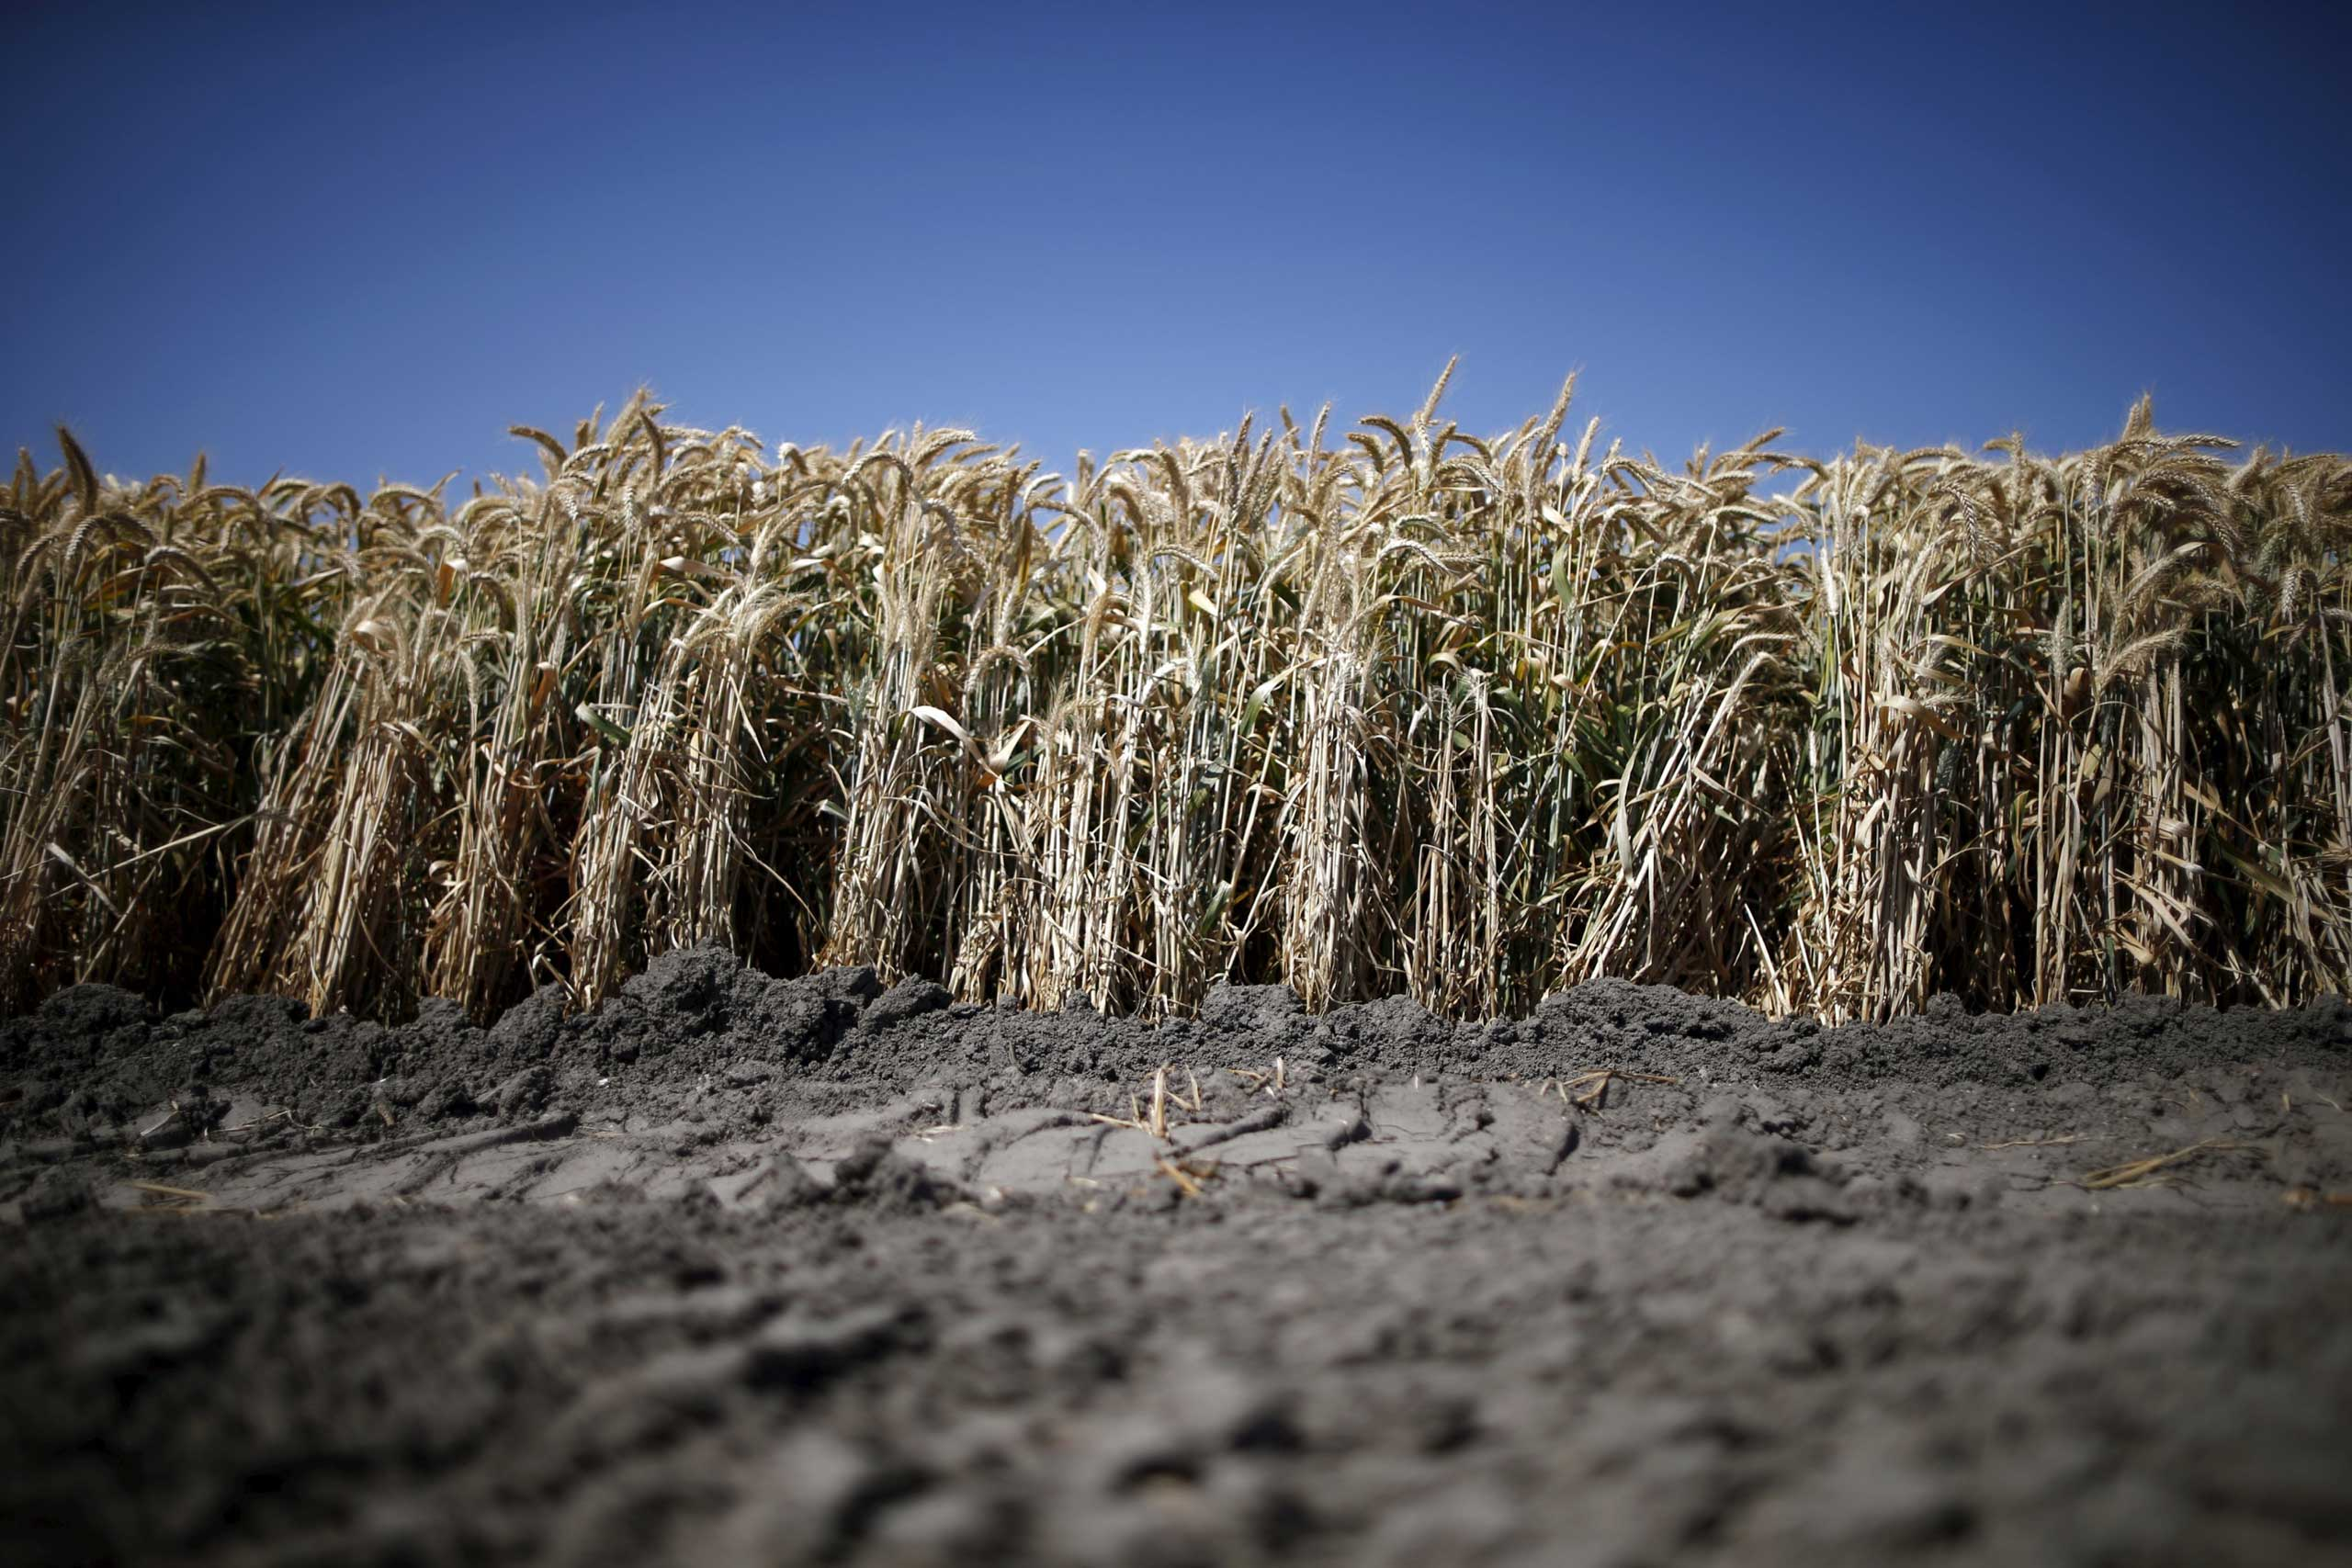 California's planting of staple crops such as cotton, corn, oats, barley, wheat, rice, and sunflowers will total 1.72 million acres in 2015, down from 1.90 million acres in 2014, according to data from the National Drought Mitigation Center. A wheat field is seen in Los Banos, Calif. May 5, 2015.